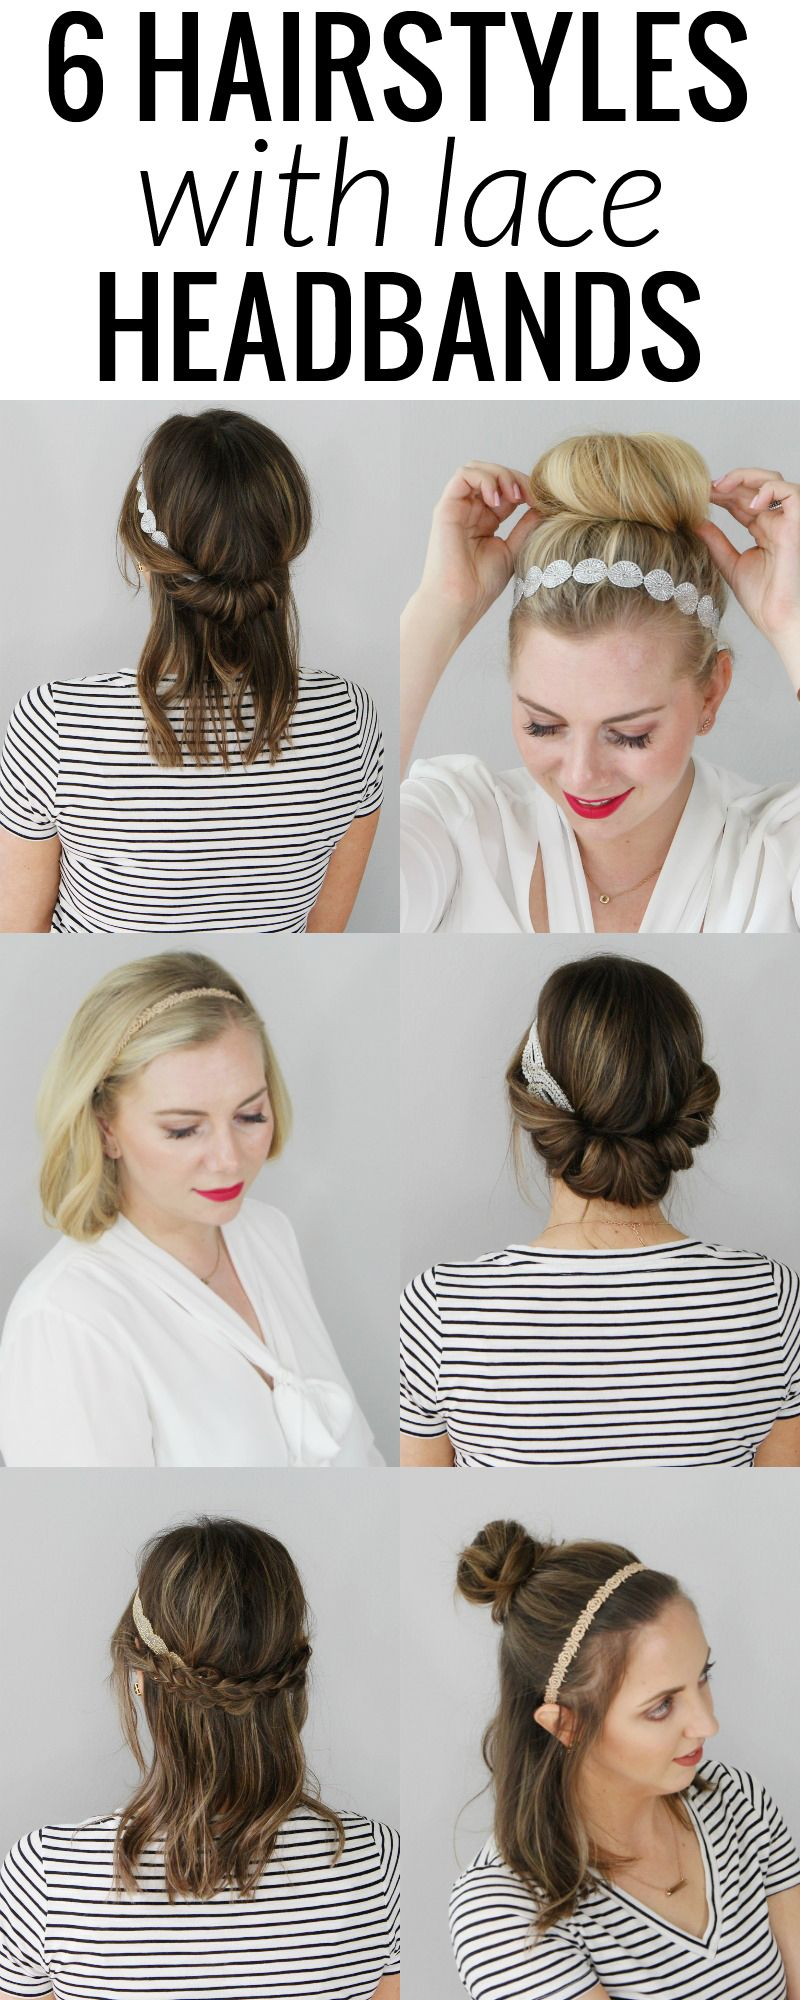 hairstyles with lace headbands each hairstyle is super chic and